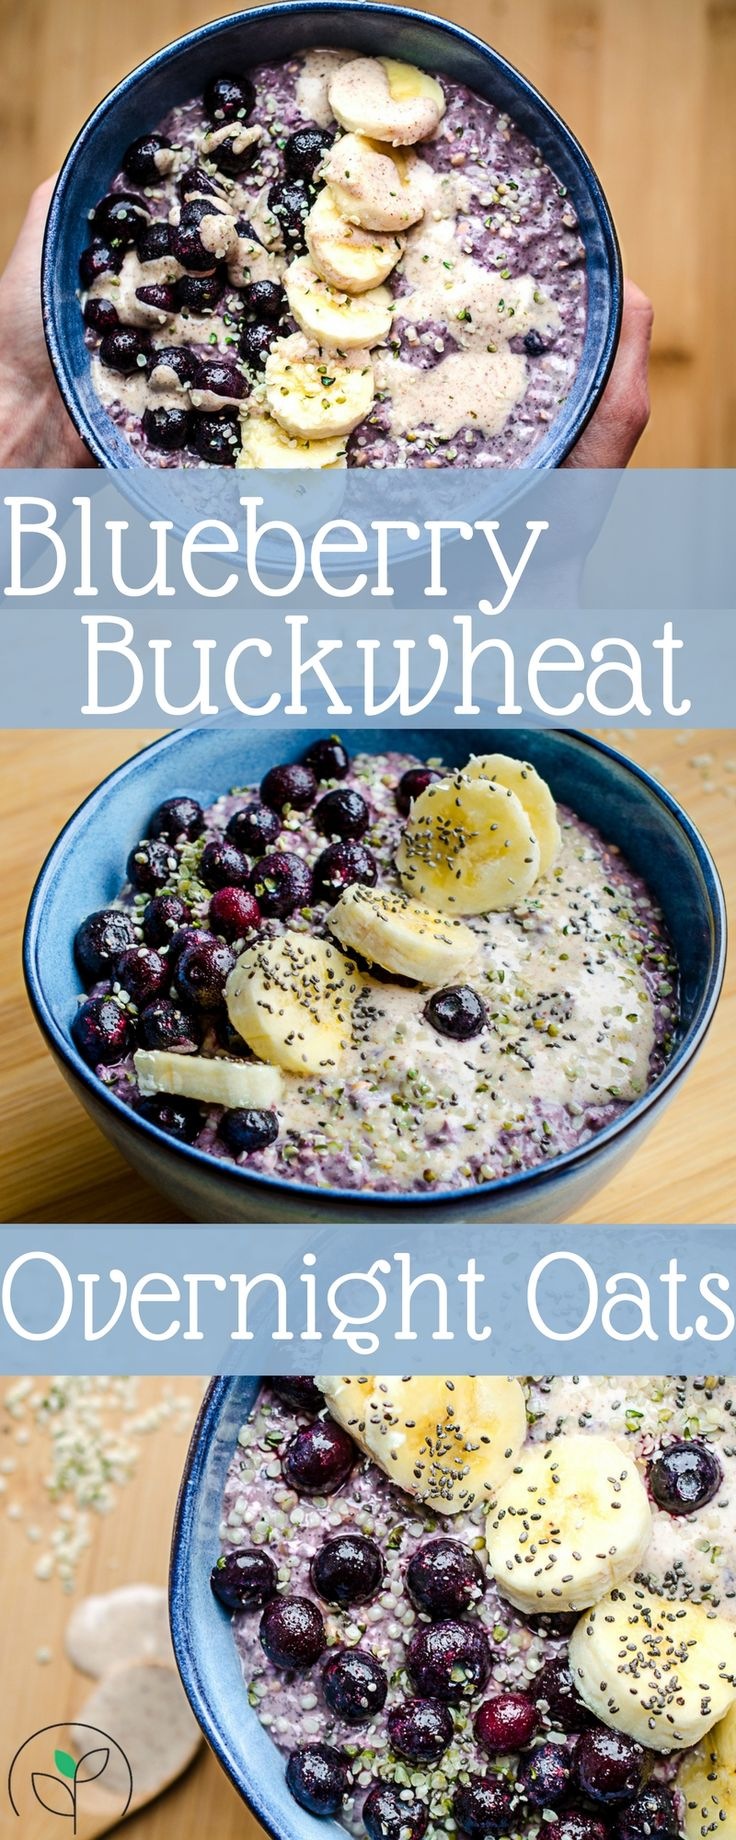 Rise Shine Cook – A Week Of Healthy Plant Based Breakfast Bowls: Overnight Blueberry & Buckwheat Oats